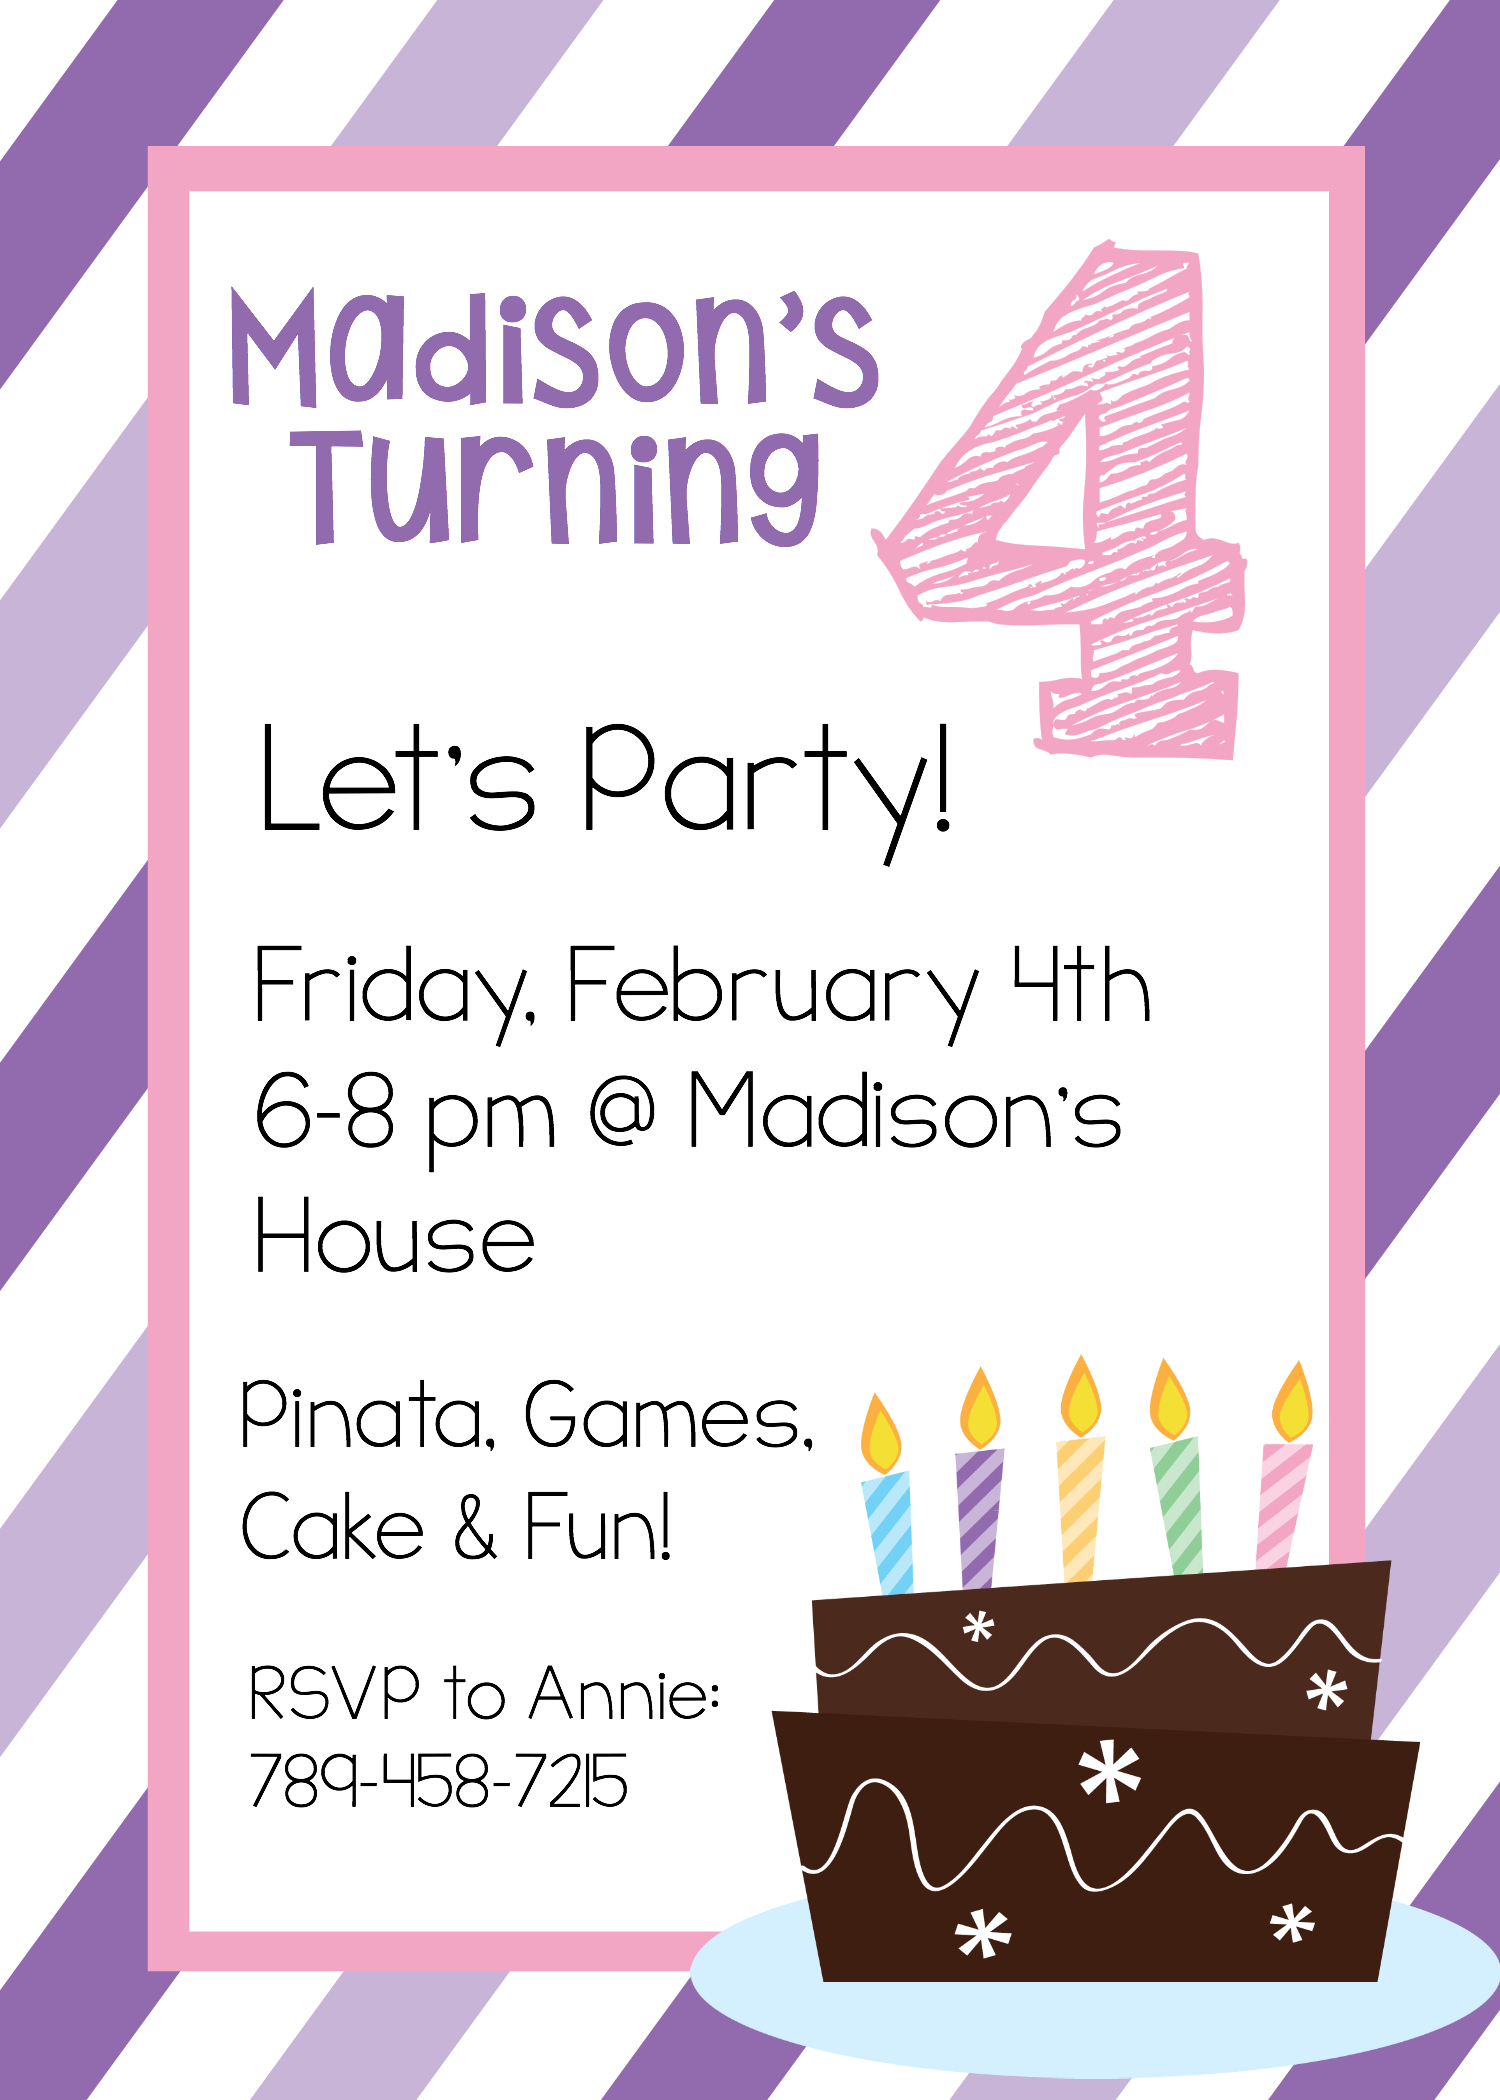 Free Printable Birthday Invitation Templates - Templates for birthday party invitations